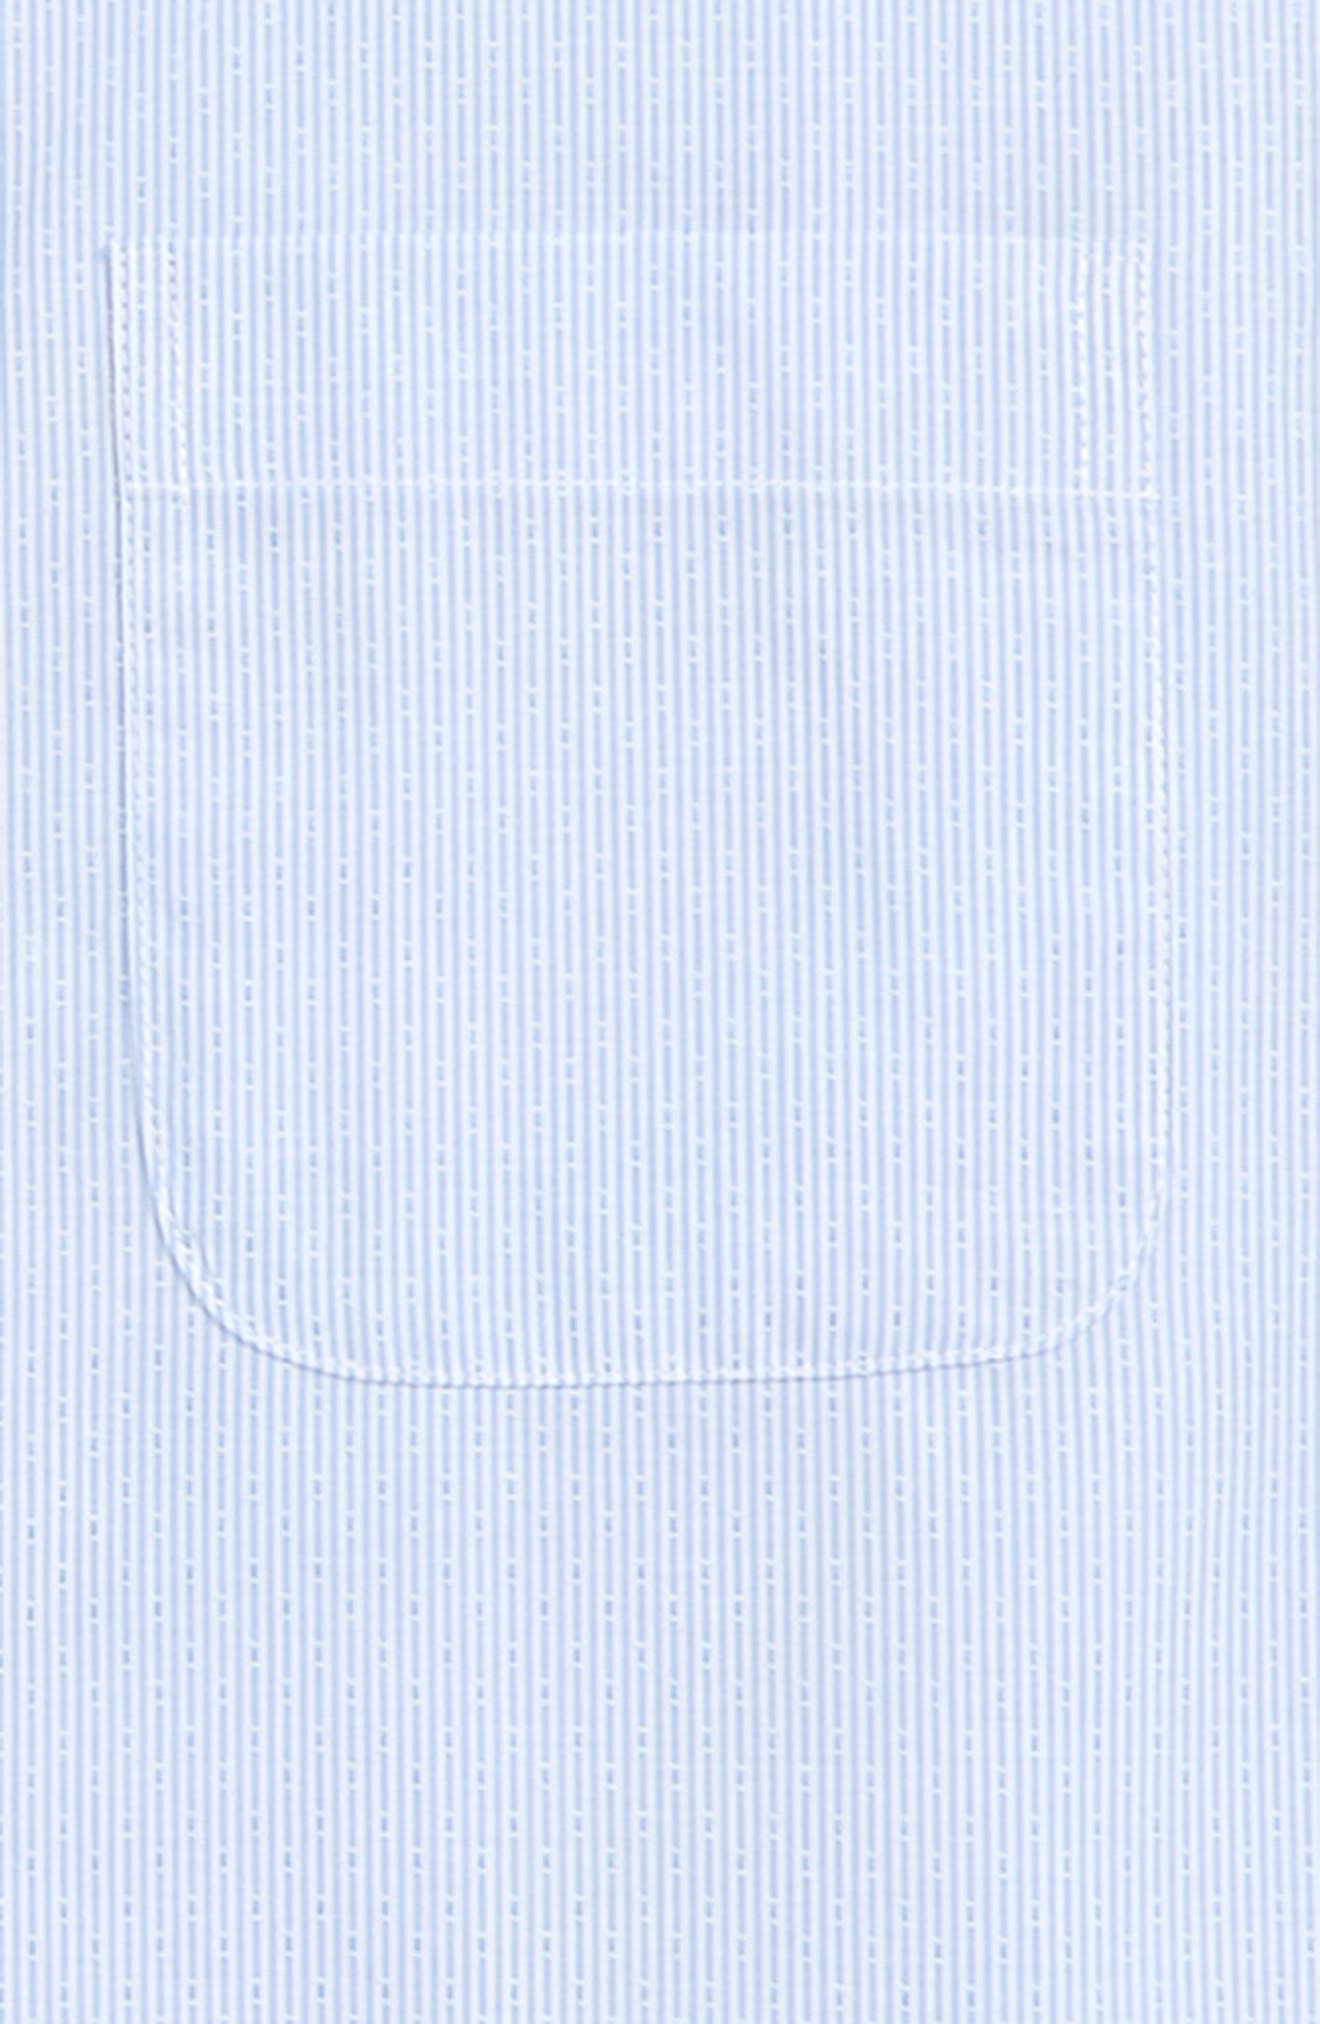 Robbia Dobby Dress Shirt,                             Alternate thumbnail 2, color,                             BLUE ROBBIA- WHITE DOBBY